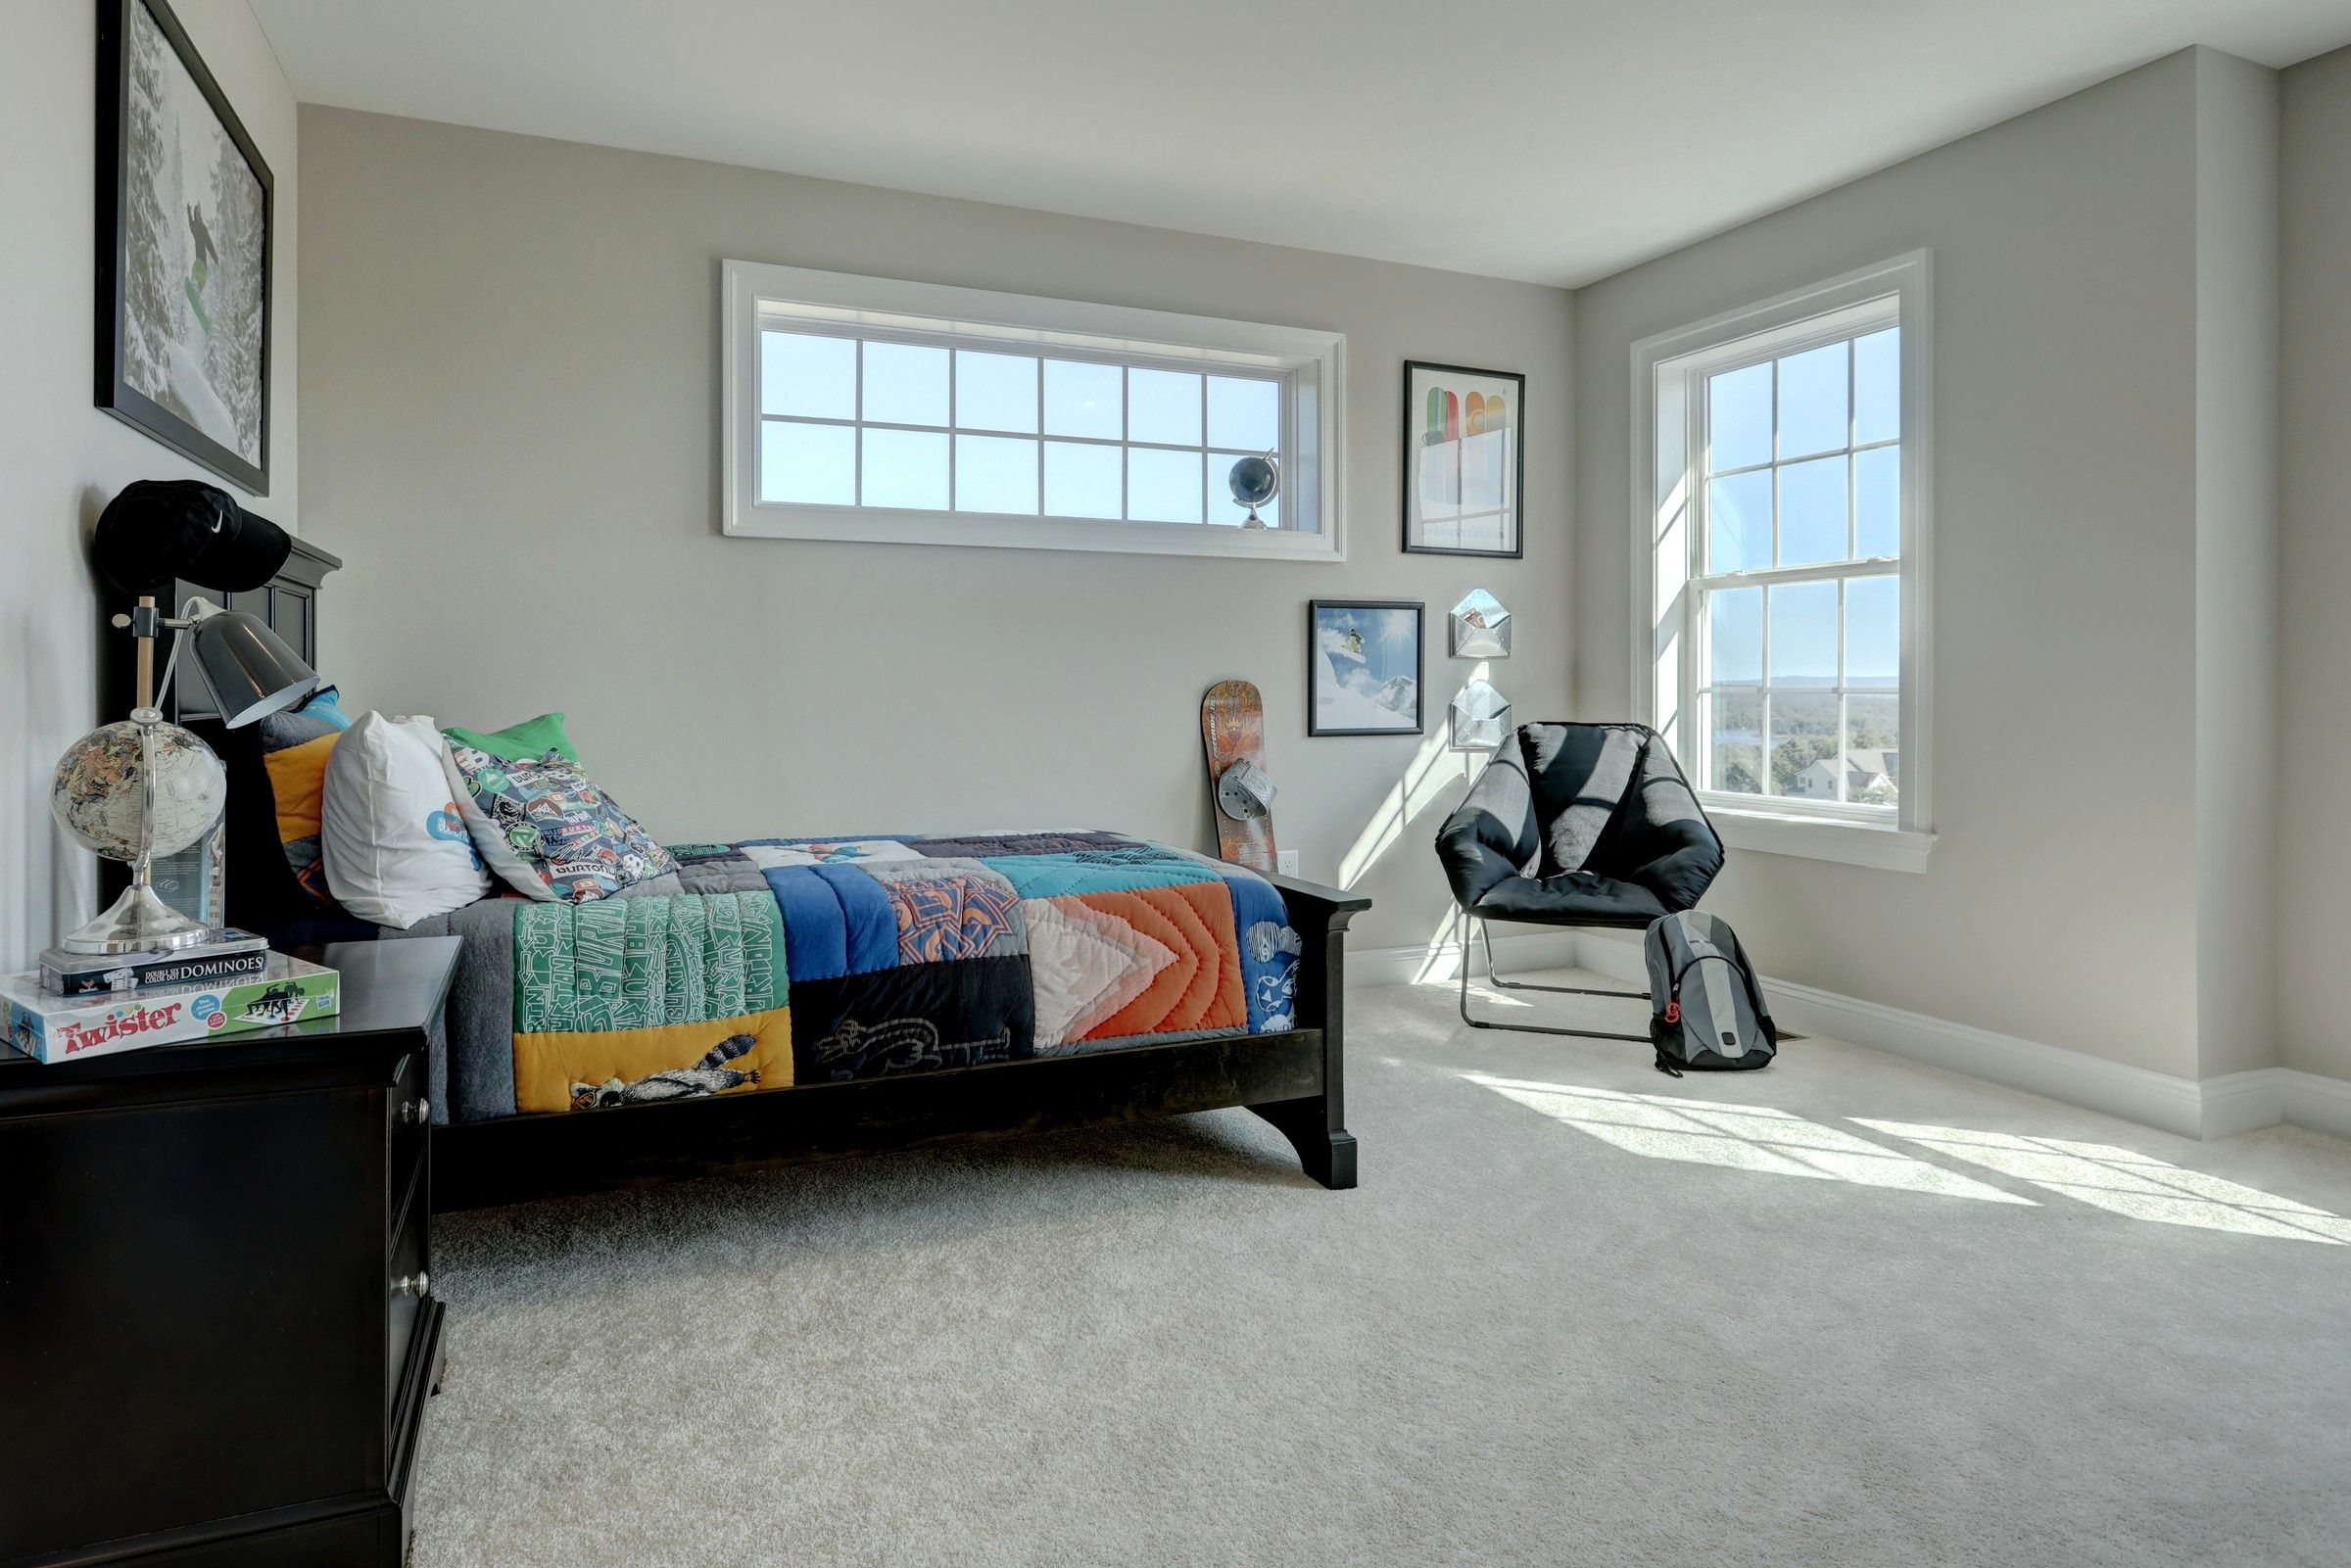 Bedroom featured in the Oxford Farmhouse By Keystone Custom Homes in Harrisburg, PA